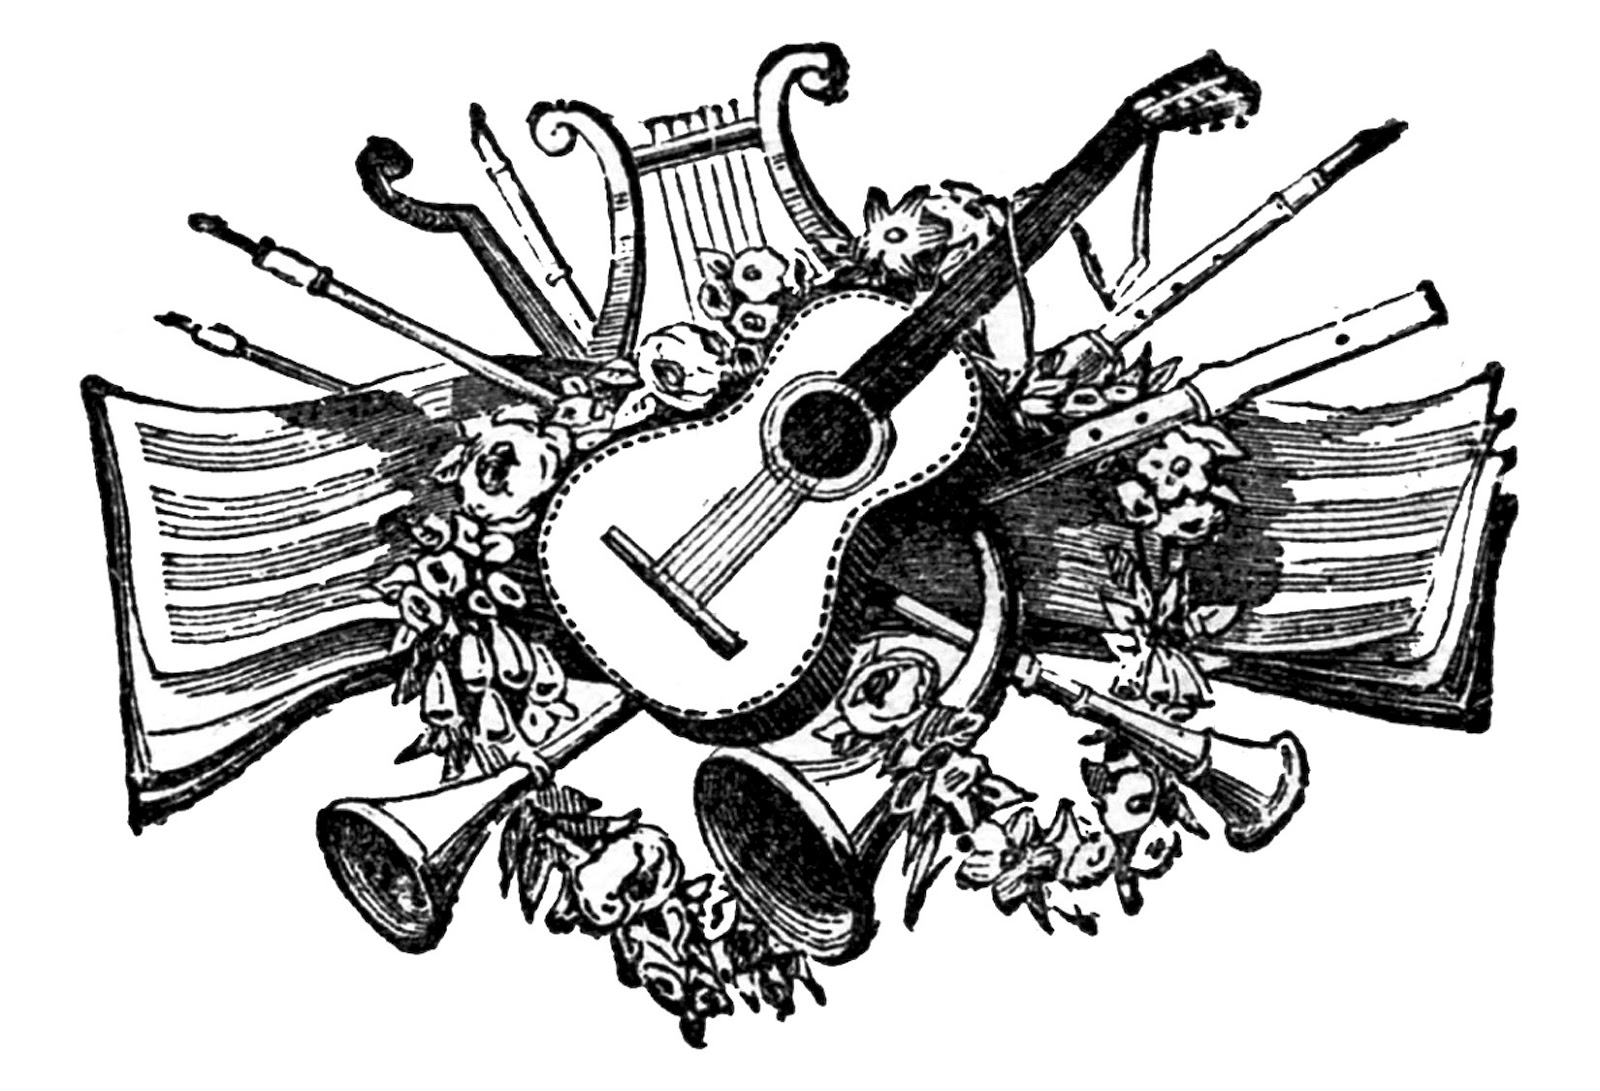 Art and musci clipart clipart black and white library Vintage Clip Art - Antique Musical Printers Ornaments - The Graphics ... clipart black and white library